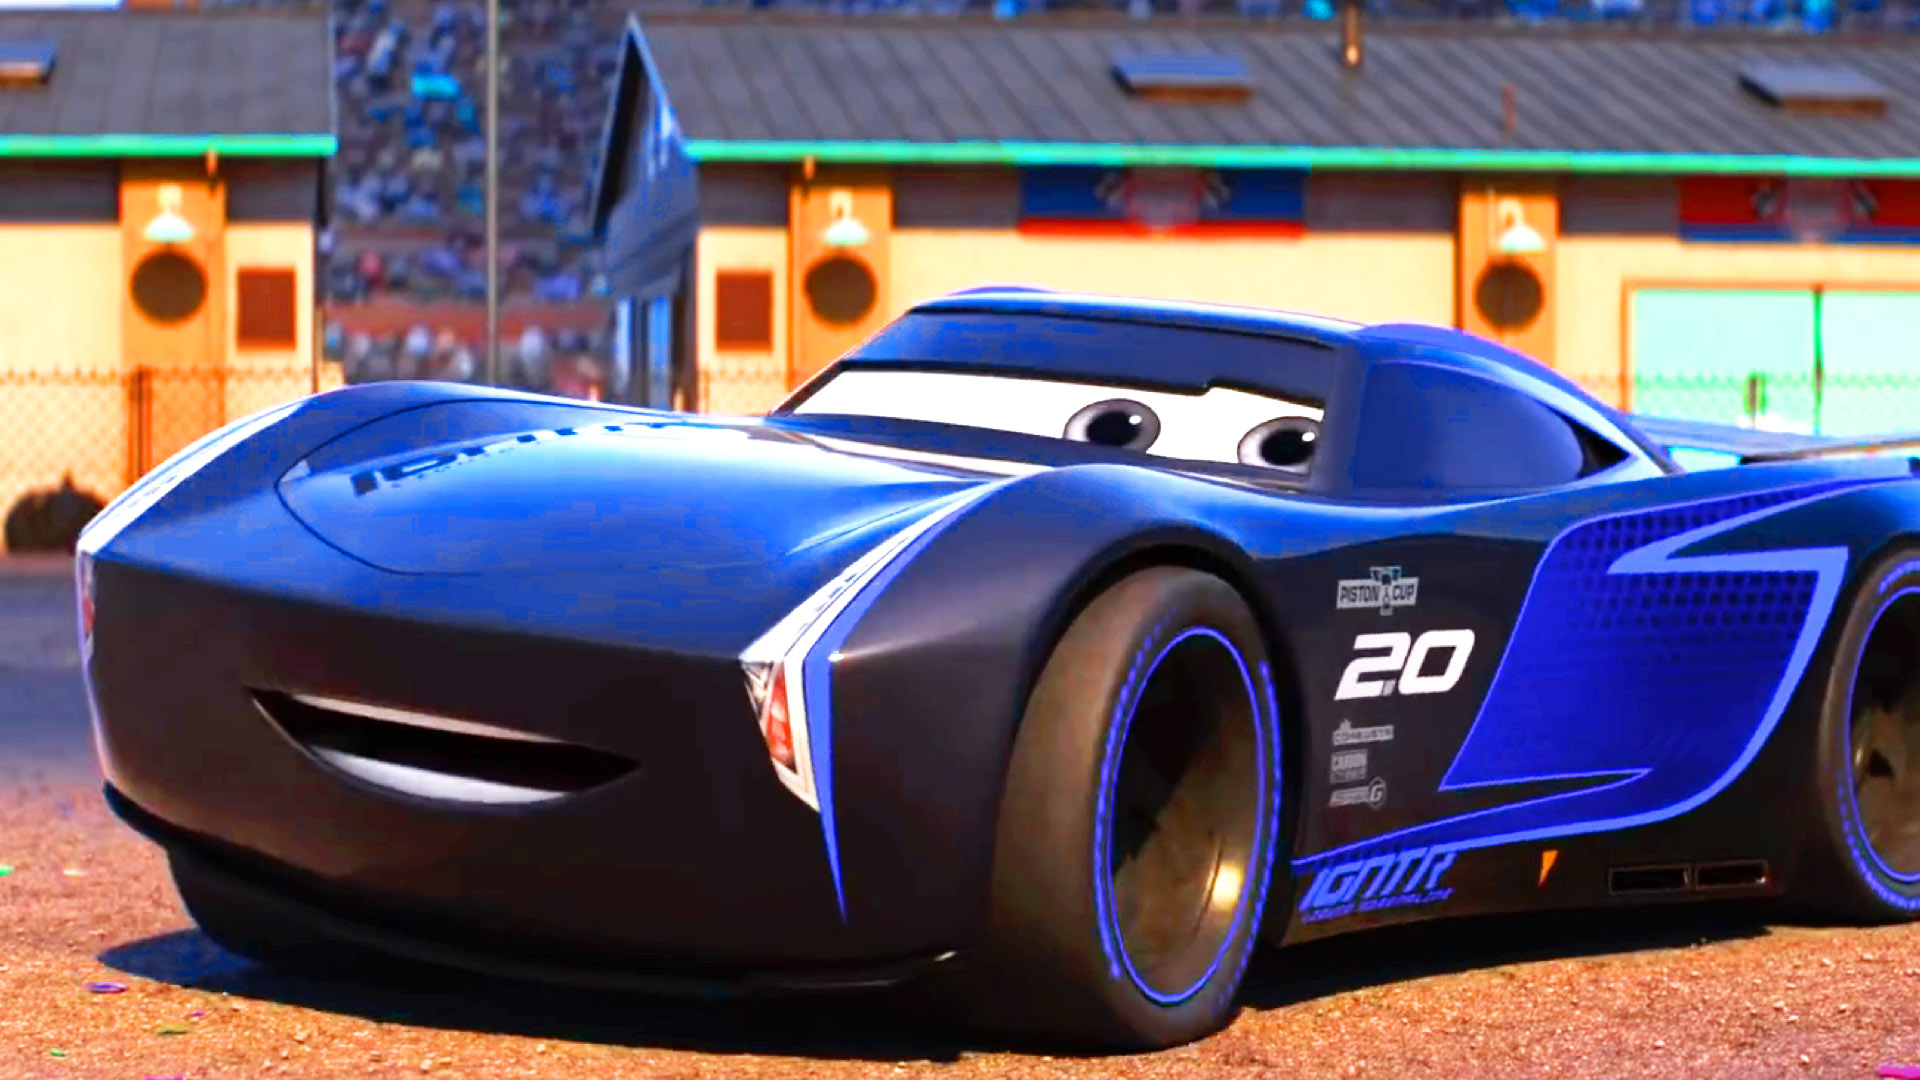 Cars 3 wallpapers high quality download free - Cars 3 wallpaper ...